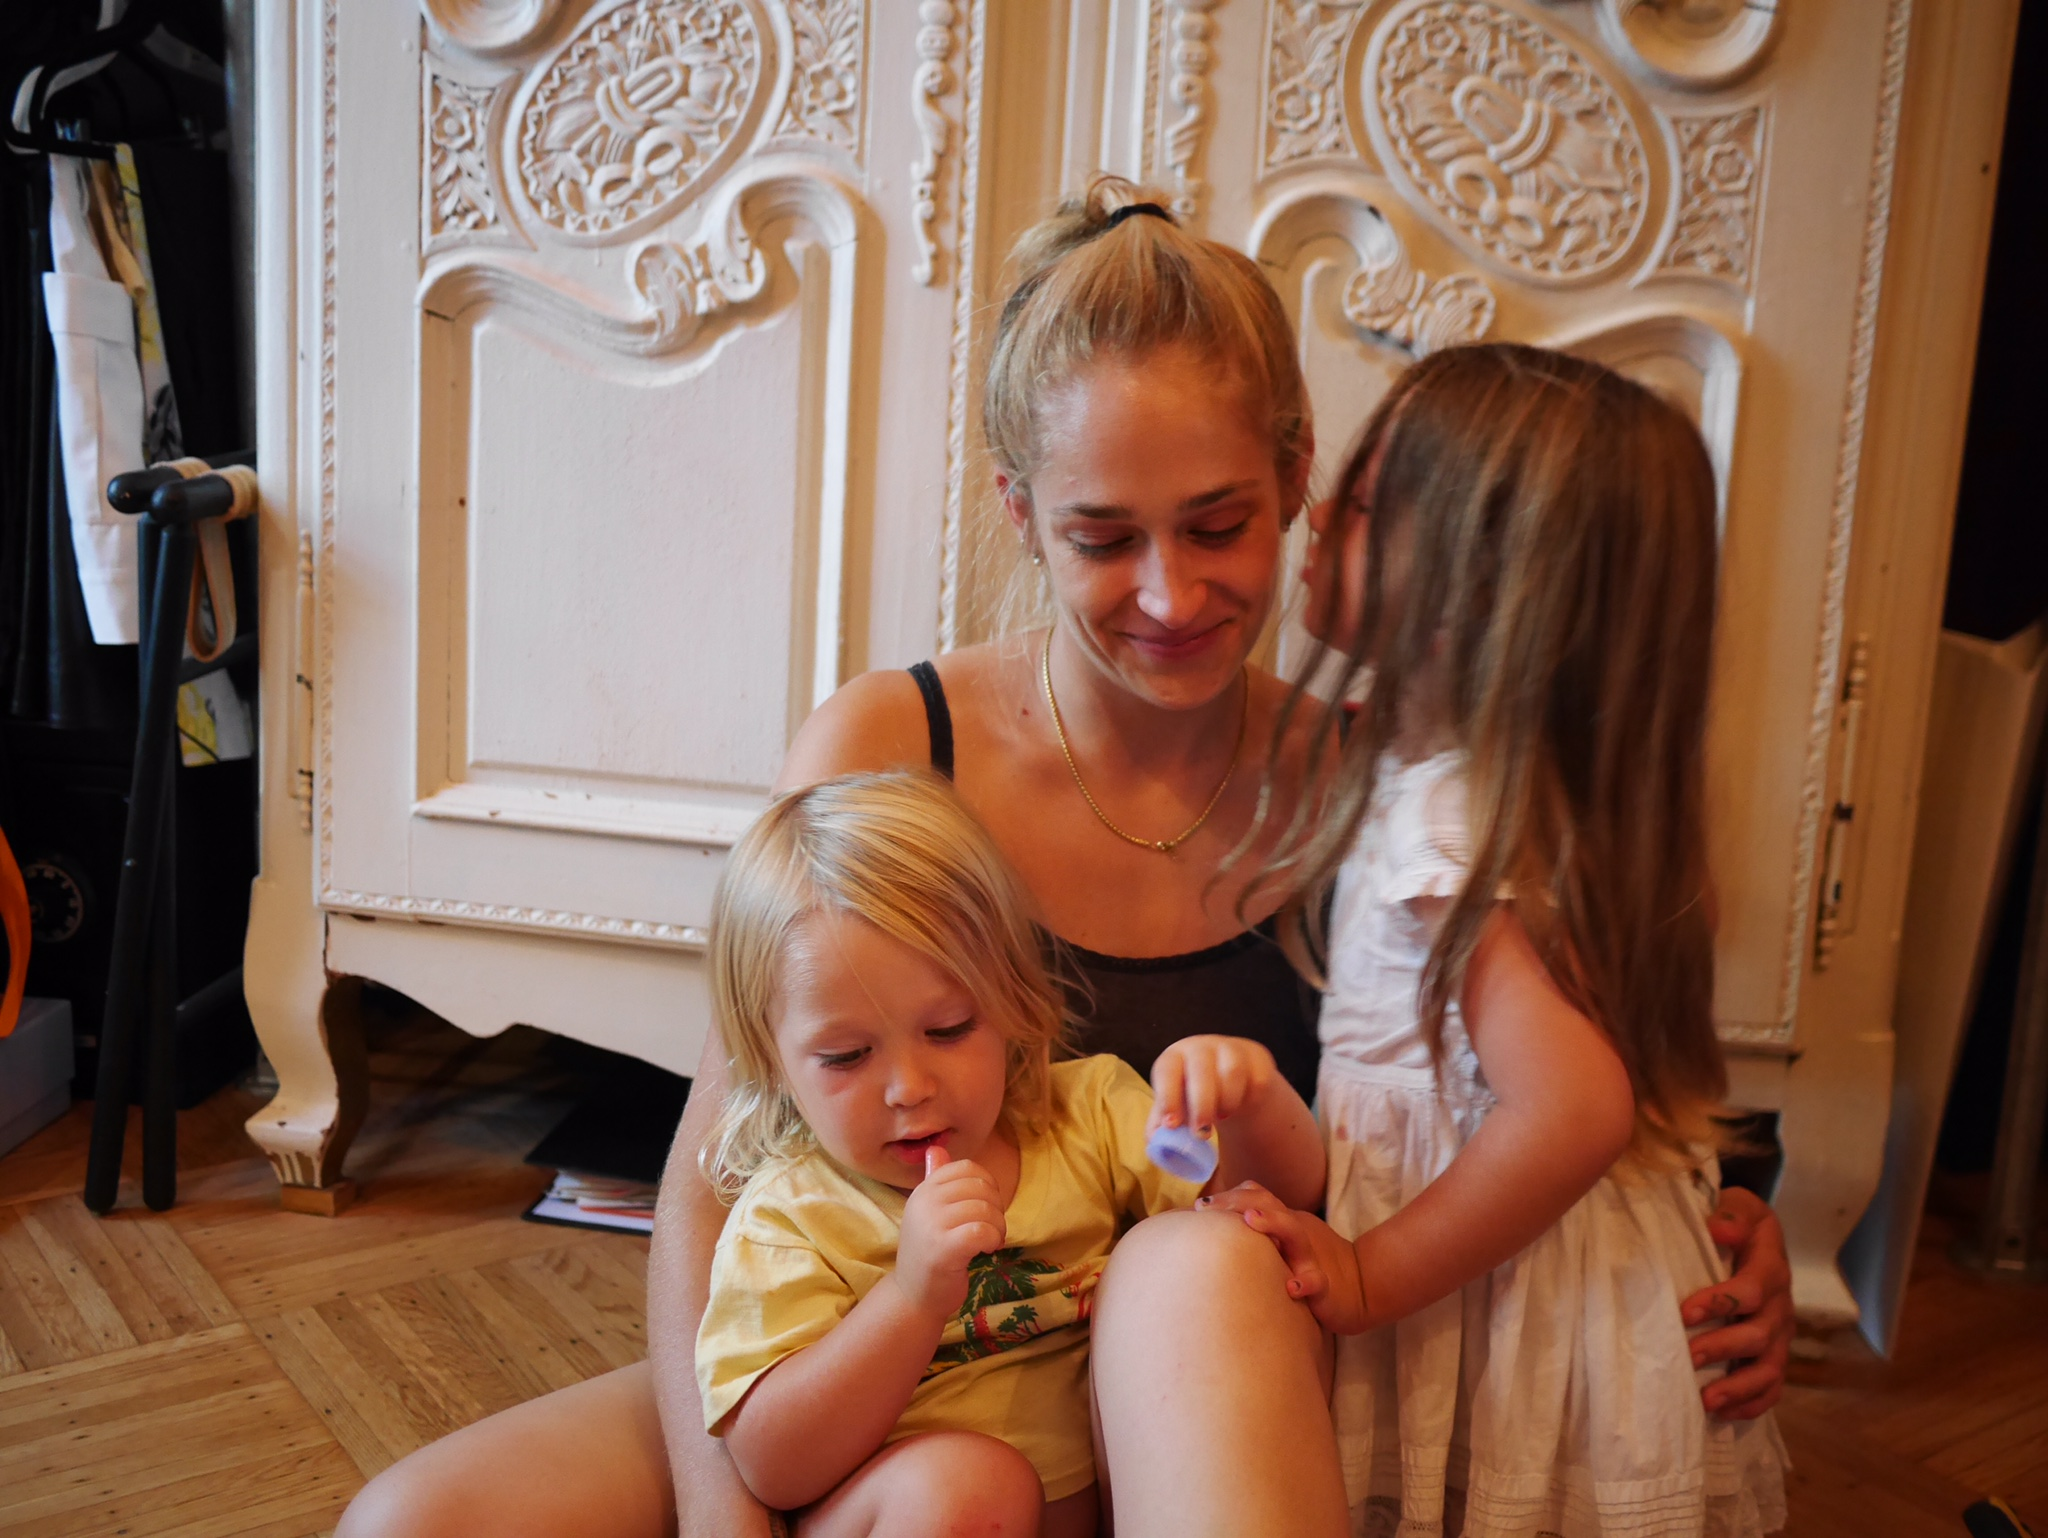 Kirke, 30, at home in Brooklyn with her children, Memphis, 2, and Rafa, 5